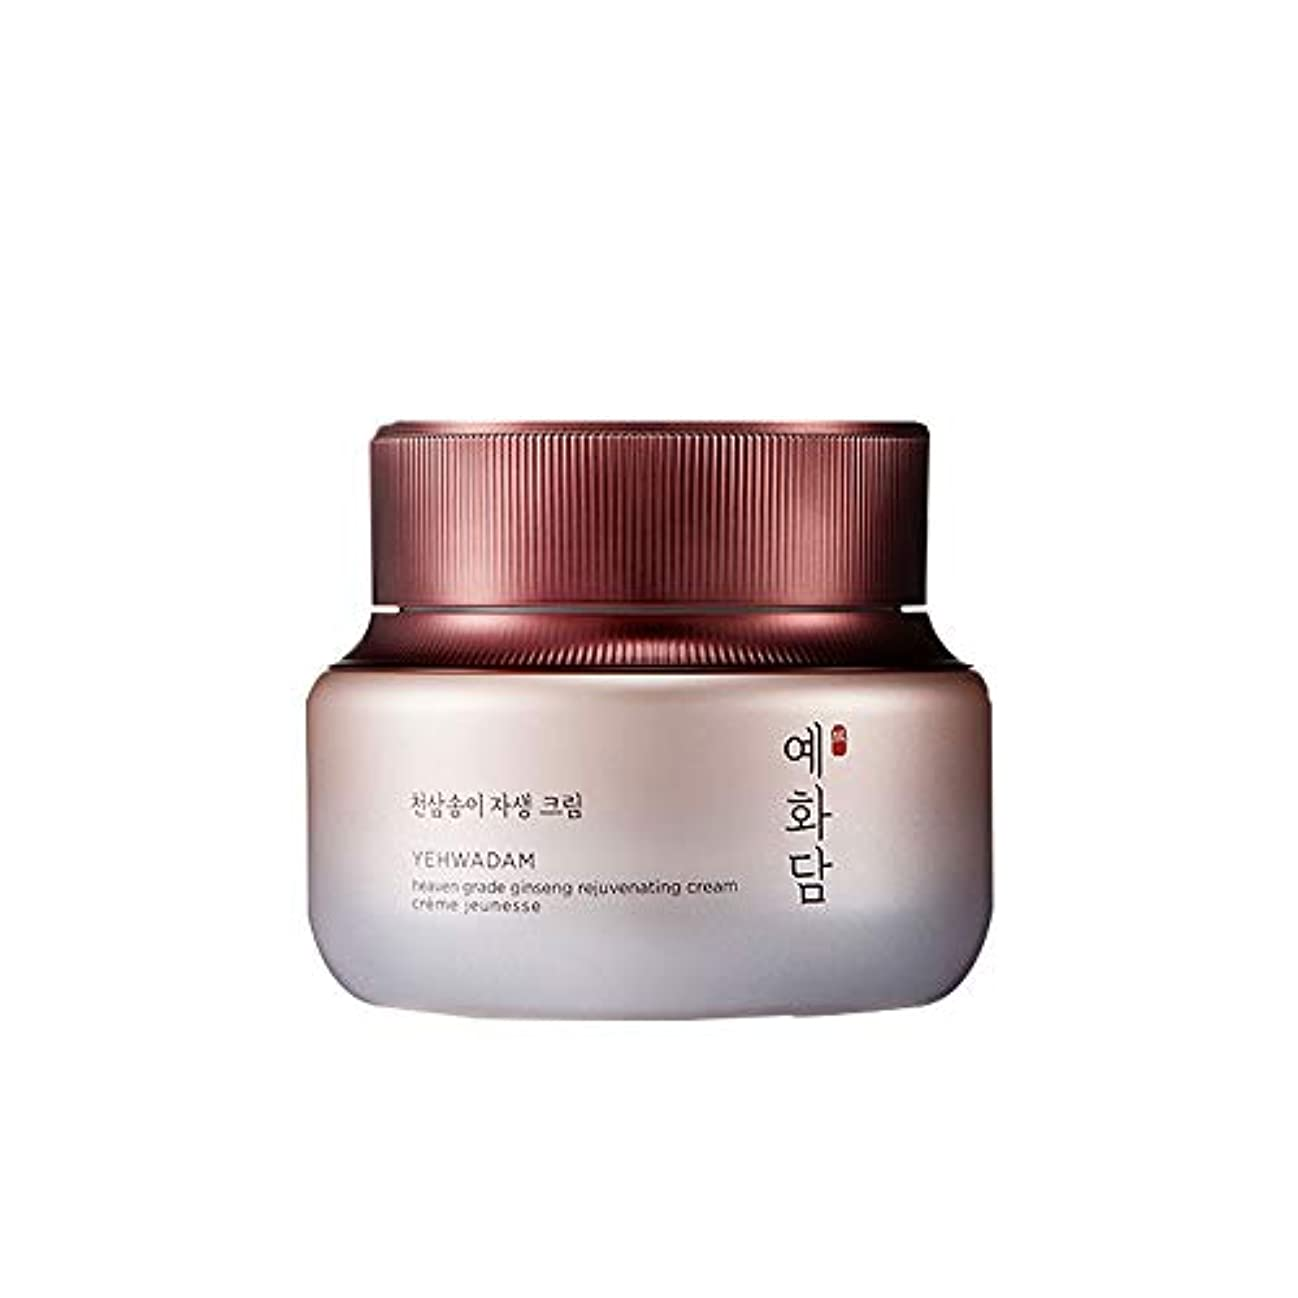 マット公演ダーツ[ザフェイスショップ]The Faceshop YEHWADAM天参松栮自生クリーム 50ml The Faceshop YEHWADAM Heaven Grade Ginseng Regenerating Cream...